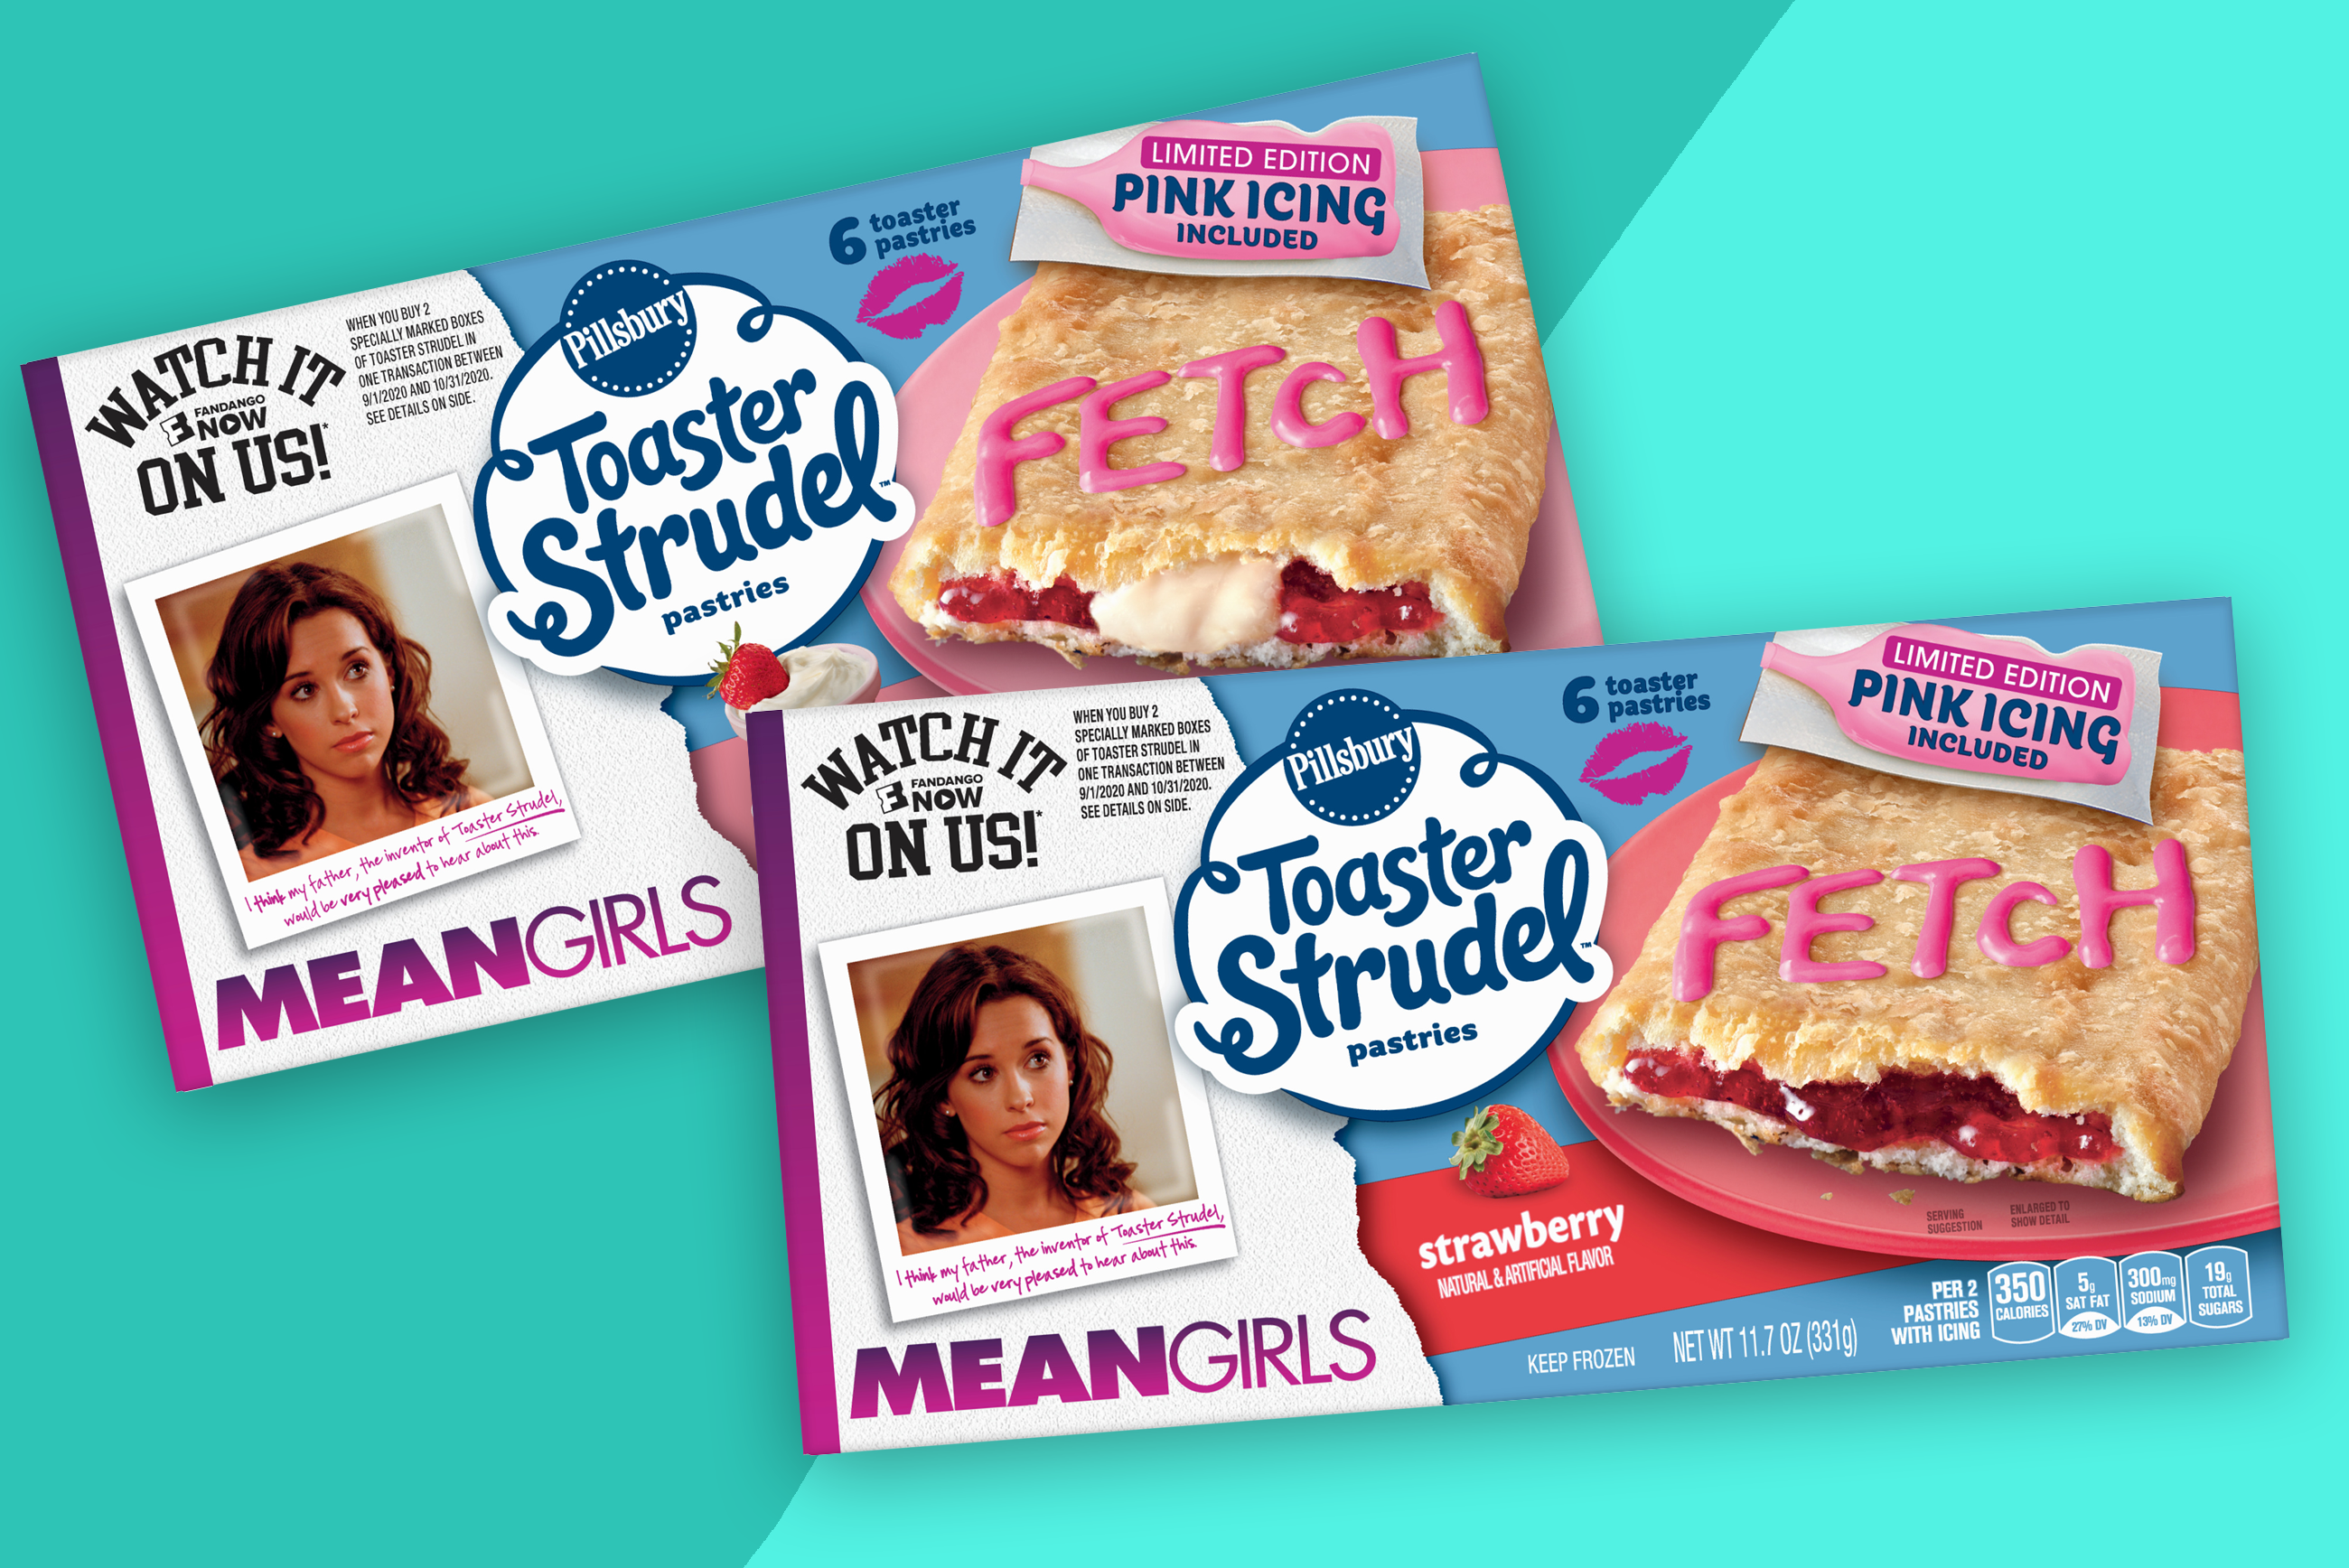 two boxes of Mean Girls Toaster Strudel on a two-tone teal background